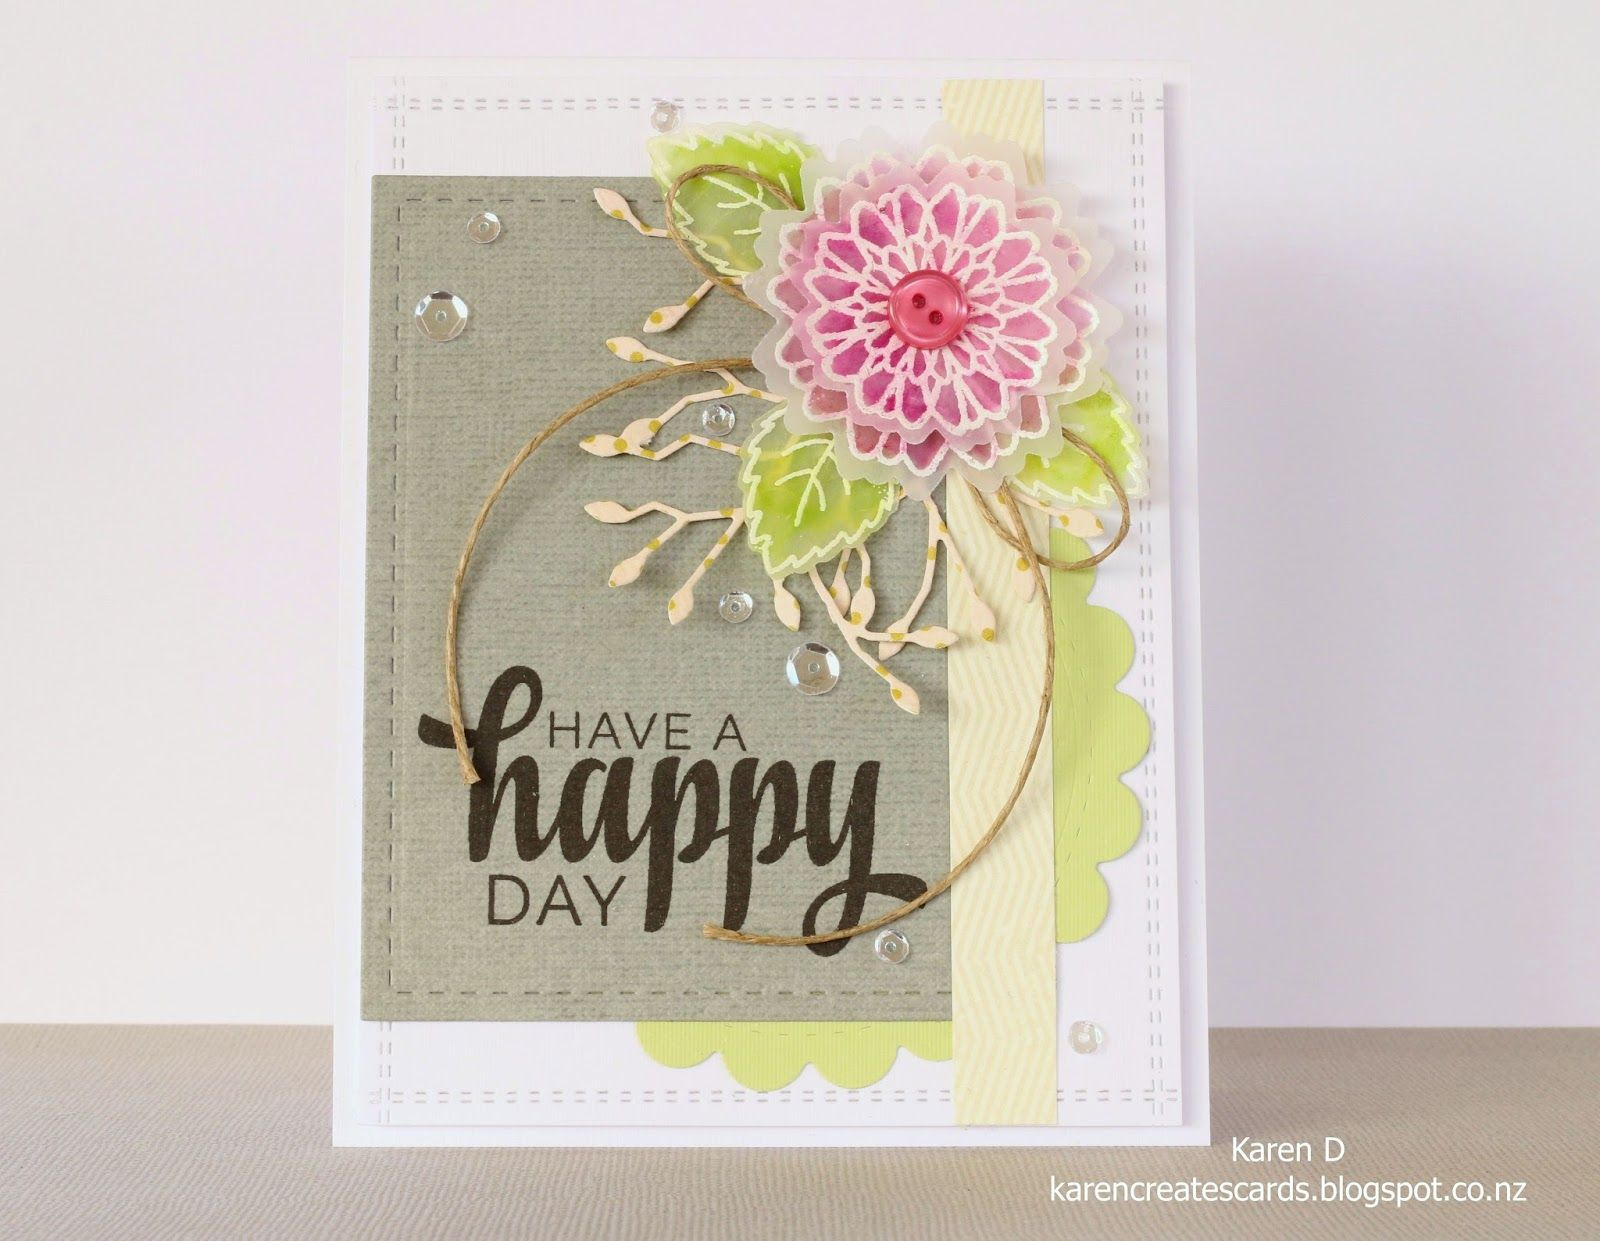 About cardmaking, with tips, ideas, my card making journey into challenges etc